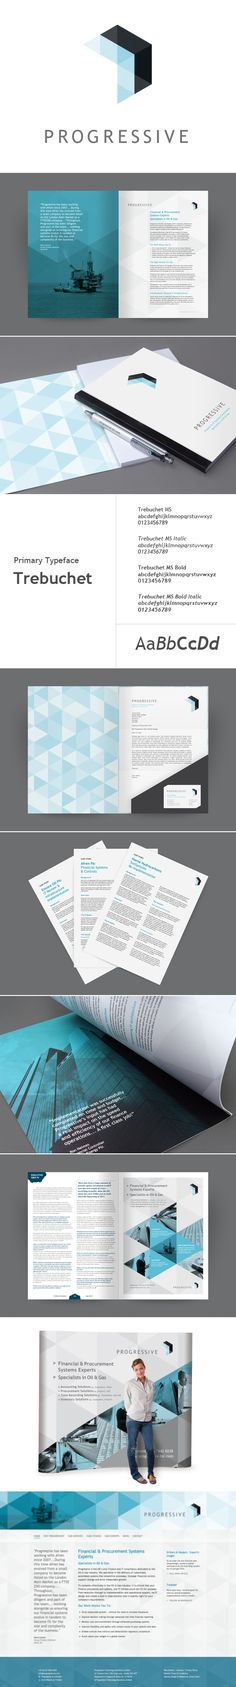 Progressive Identity Design Design Brochure, Brochure Layout, Graphic Design Branding, Stationery Design, Typography Design, Packaging Design, Logo Design, Corporate Design, Brand Identity Design